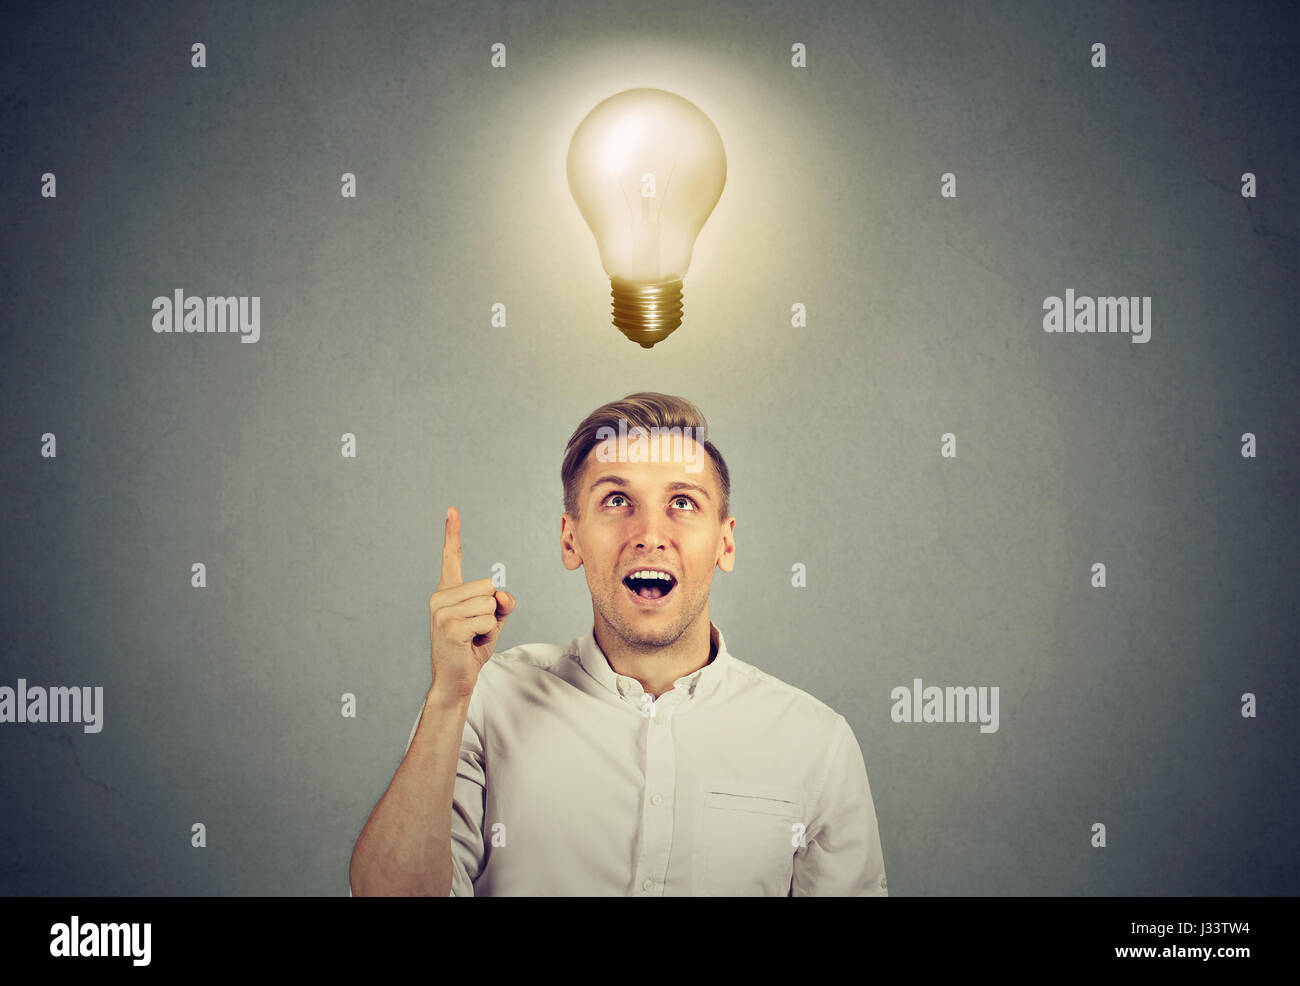 Young Business Man With Idea Solution And Light Bulb Over His Head